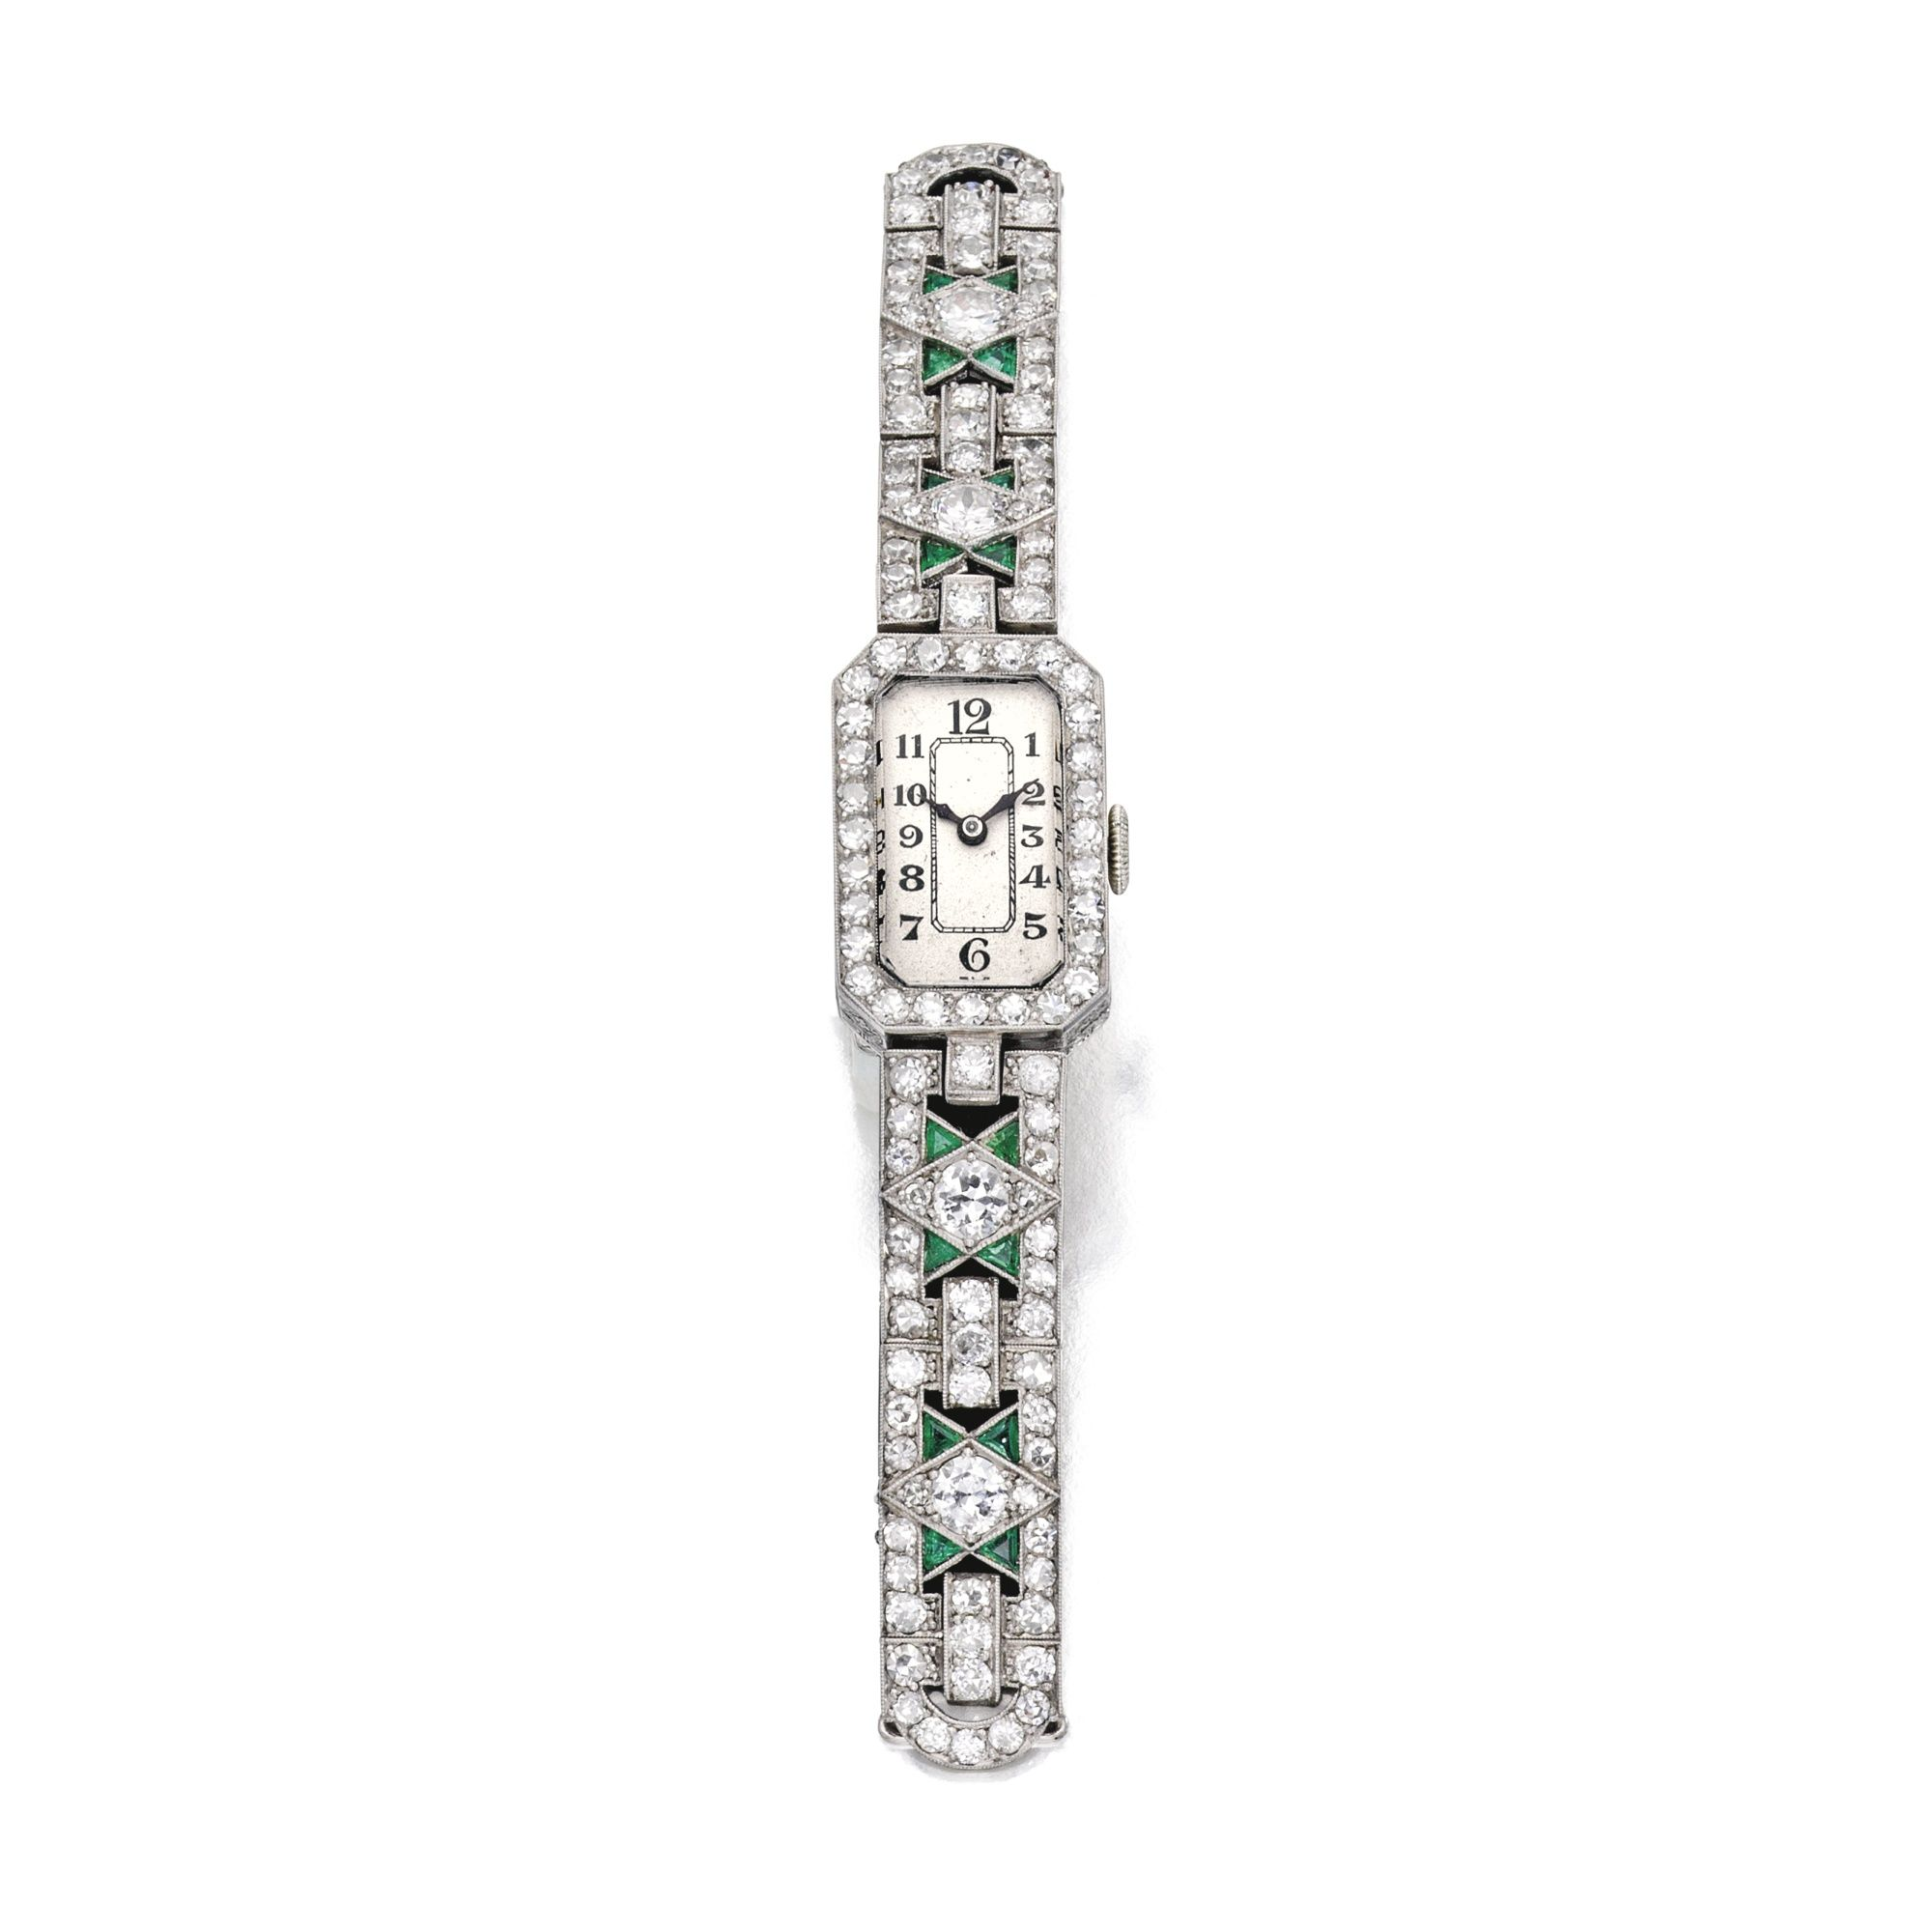 circa ladies s extremely emerald art platinum watches fine diamond a pin and deco